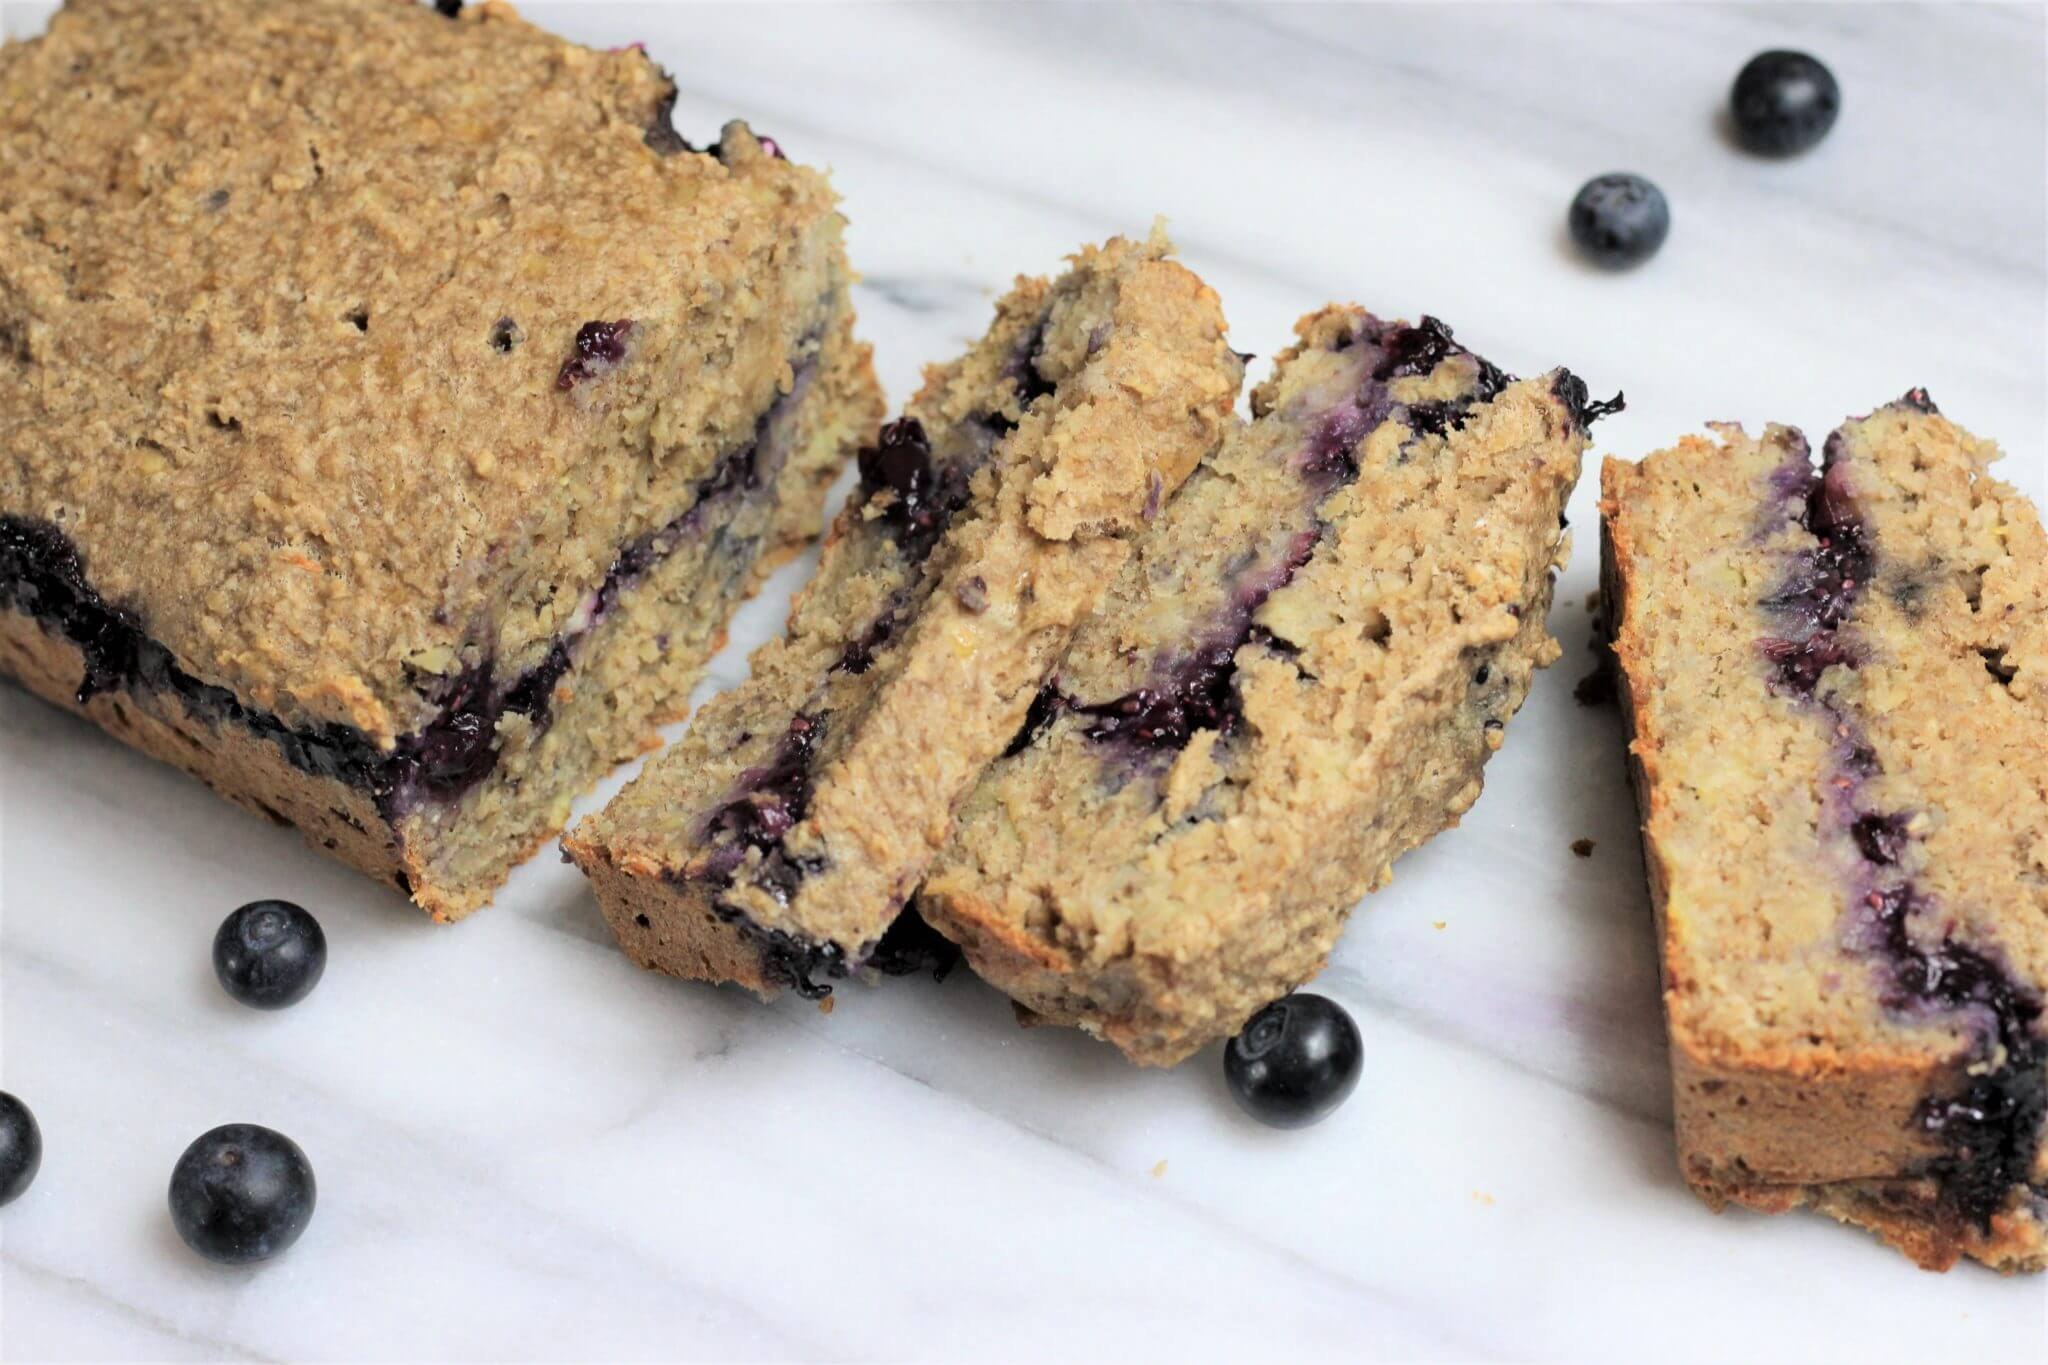 Stuffed Blueberry Banana Bread